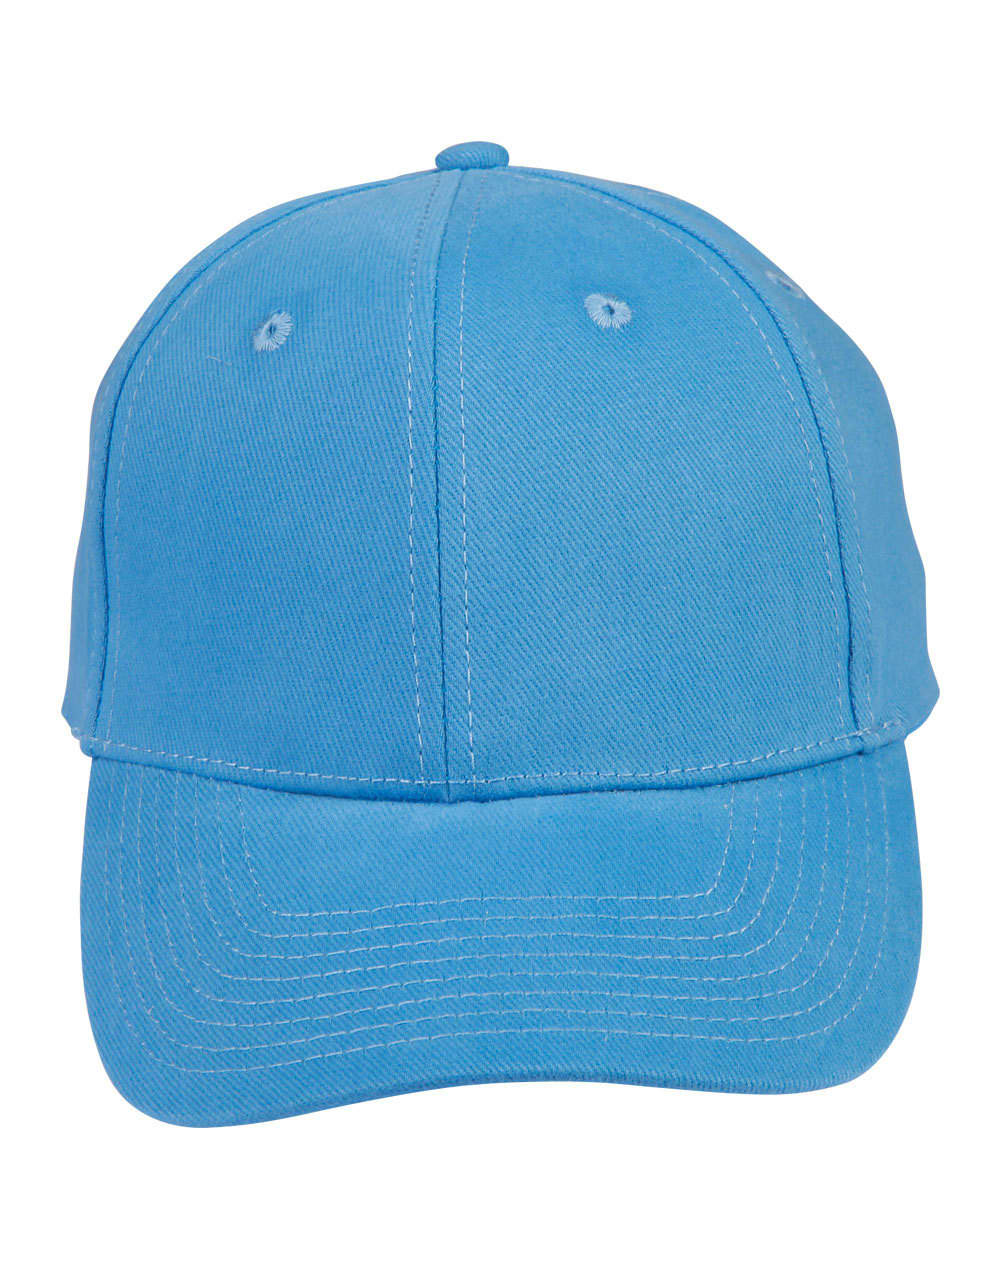 Skyblue Heavy Brushed Cotton Cap